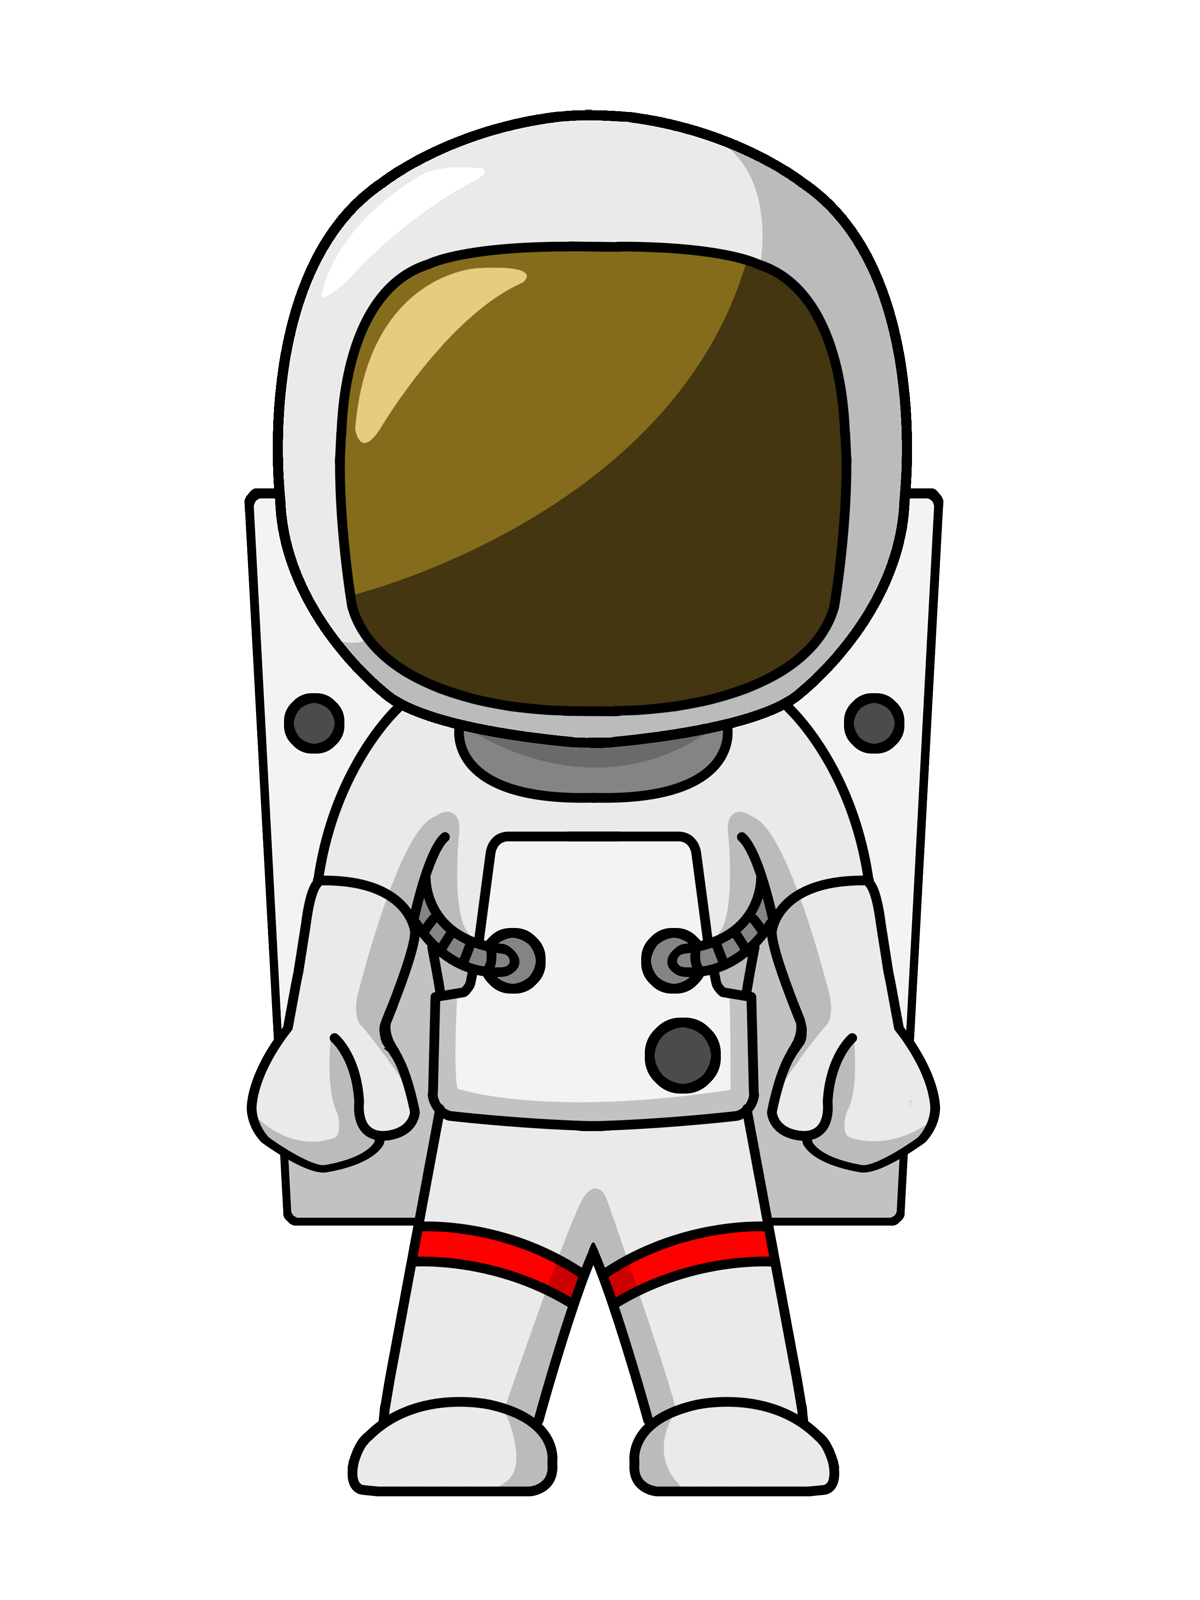 Free Printable Astronaut Mask - ClipArt Best